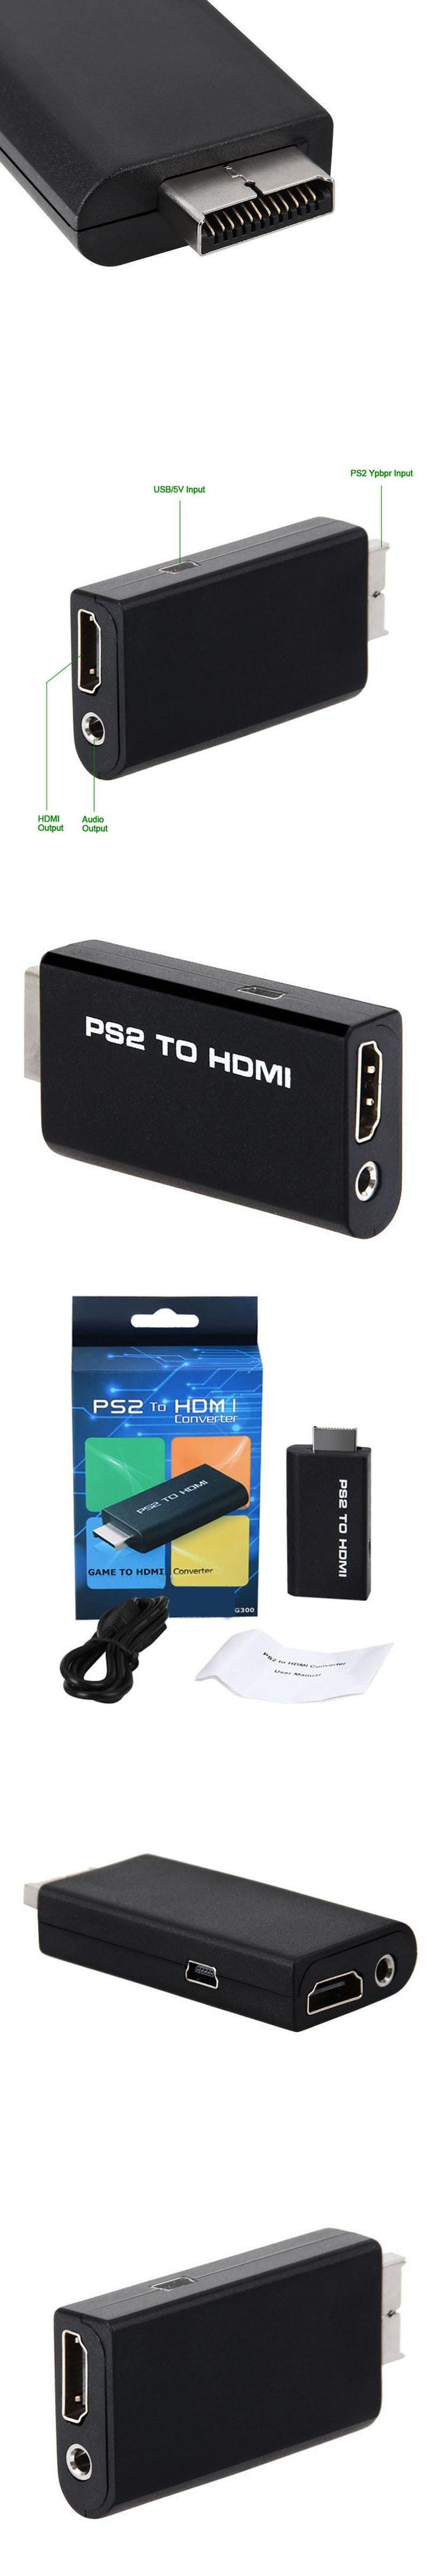 PS2 to HDMI Audio Video Converter Adapter with 3 5mm Stere Audio Output Monitor